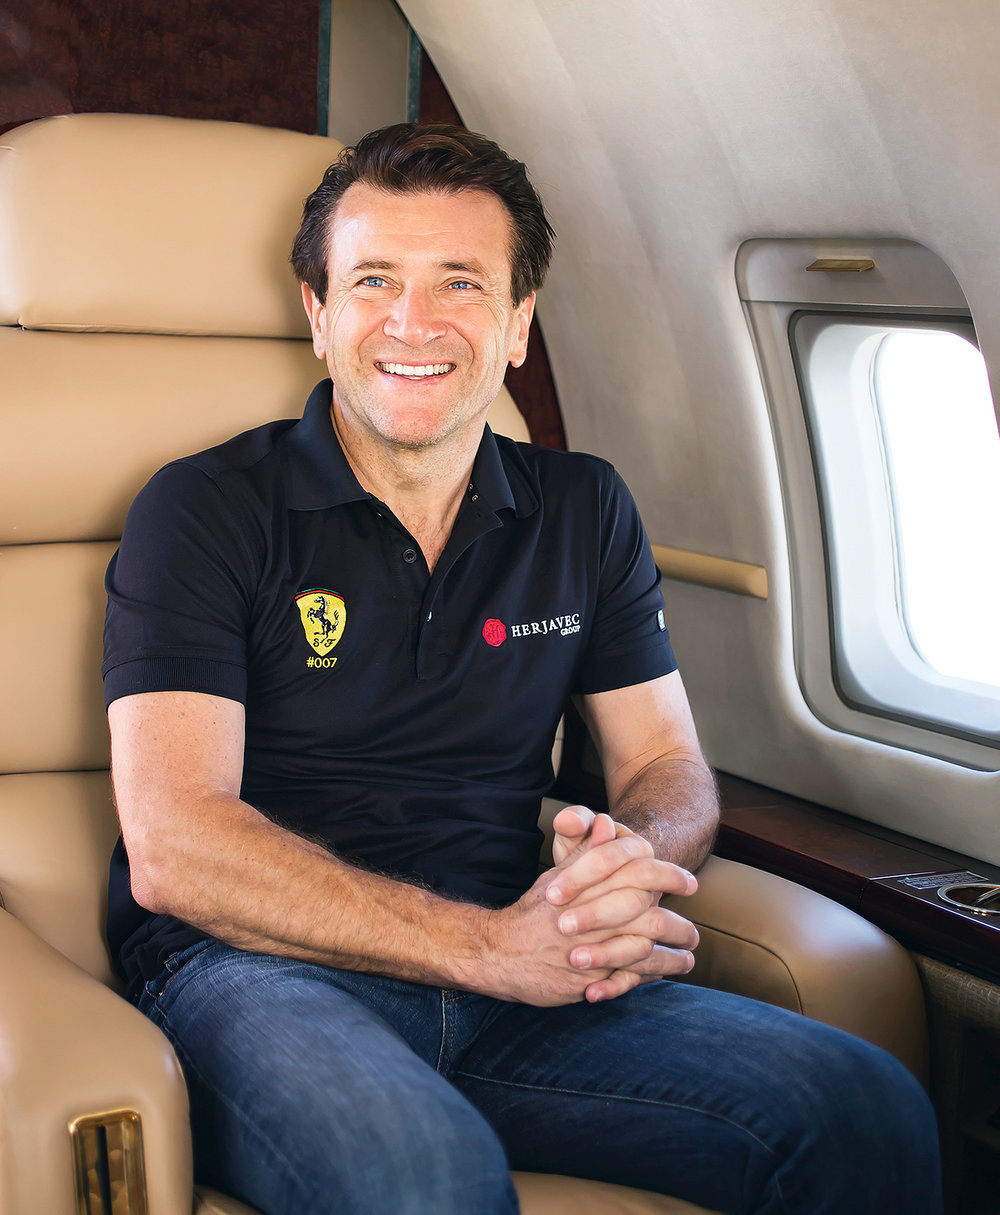 Bombardier Experience Magazine - Business Aircraft - Creative Direction and Art Direction by Guillaume Briere (Montreal and Toronto) - Shark Tank's Robert Herjavec Portrait - Luxury and Travel Branded Content